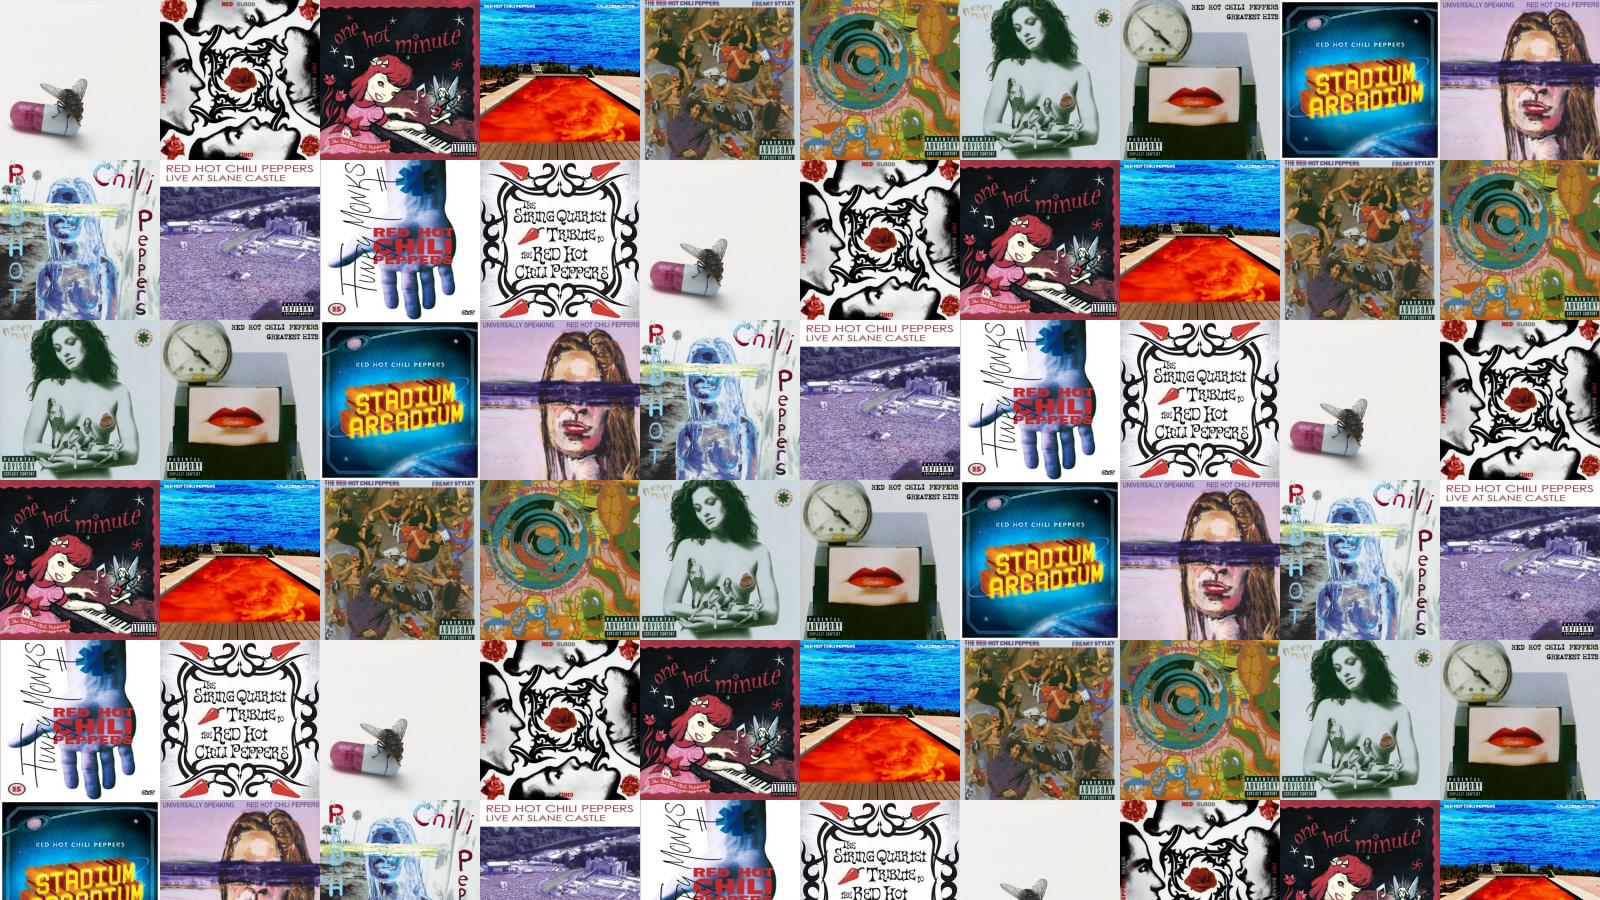 Red Hot Chili Peppers Red Hot Chili Peppers Wallpaper Tiled